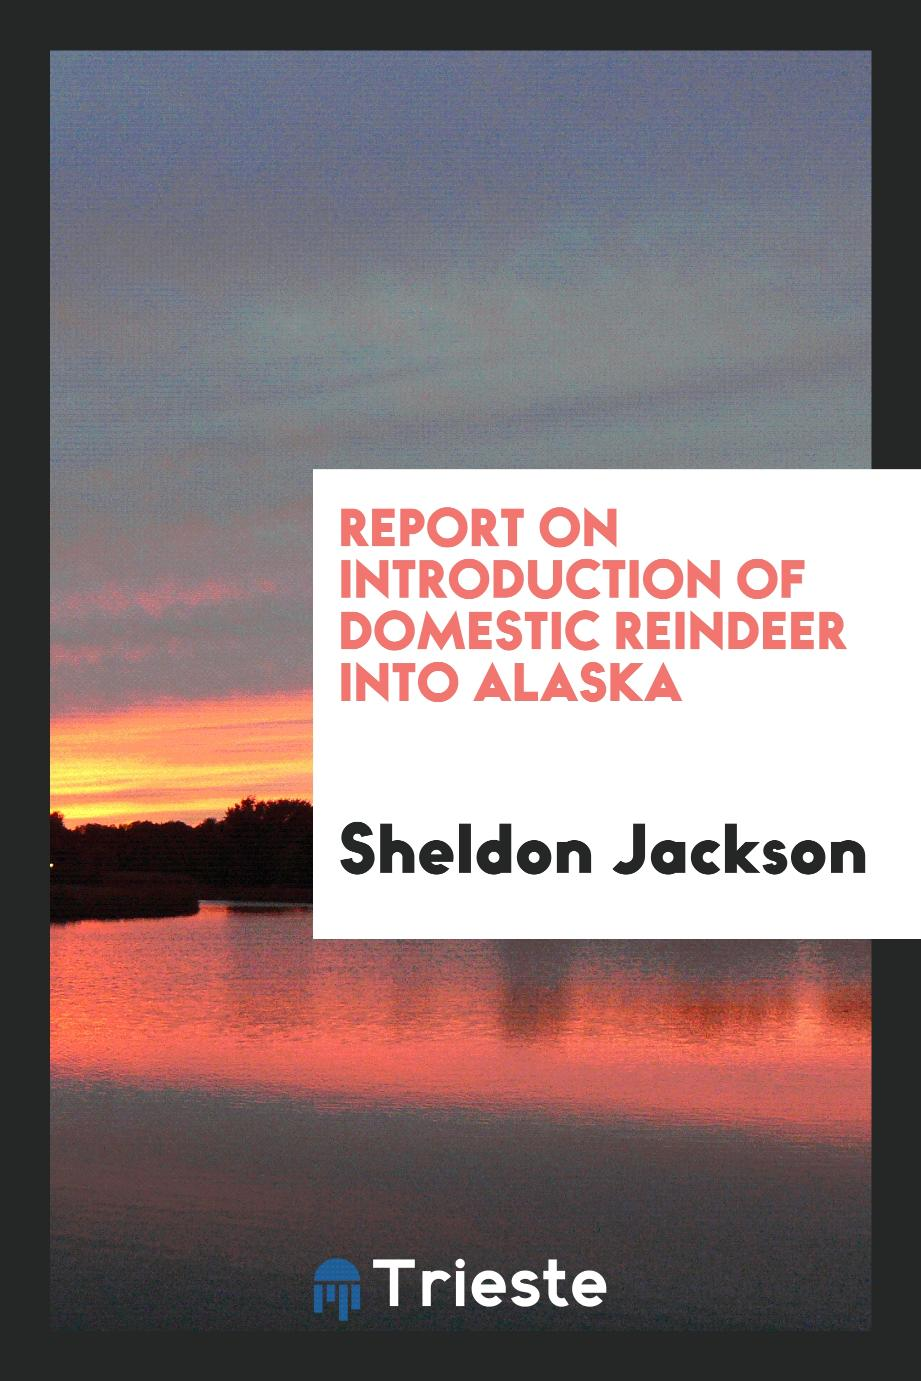 Report on Introduction of Domestic Reindeer into Alaska